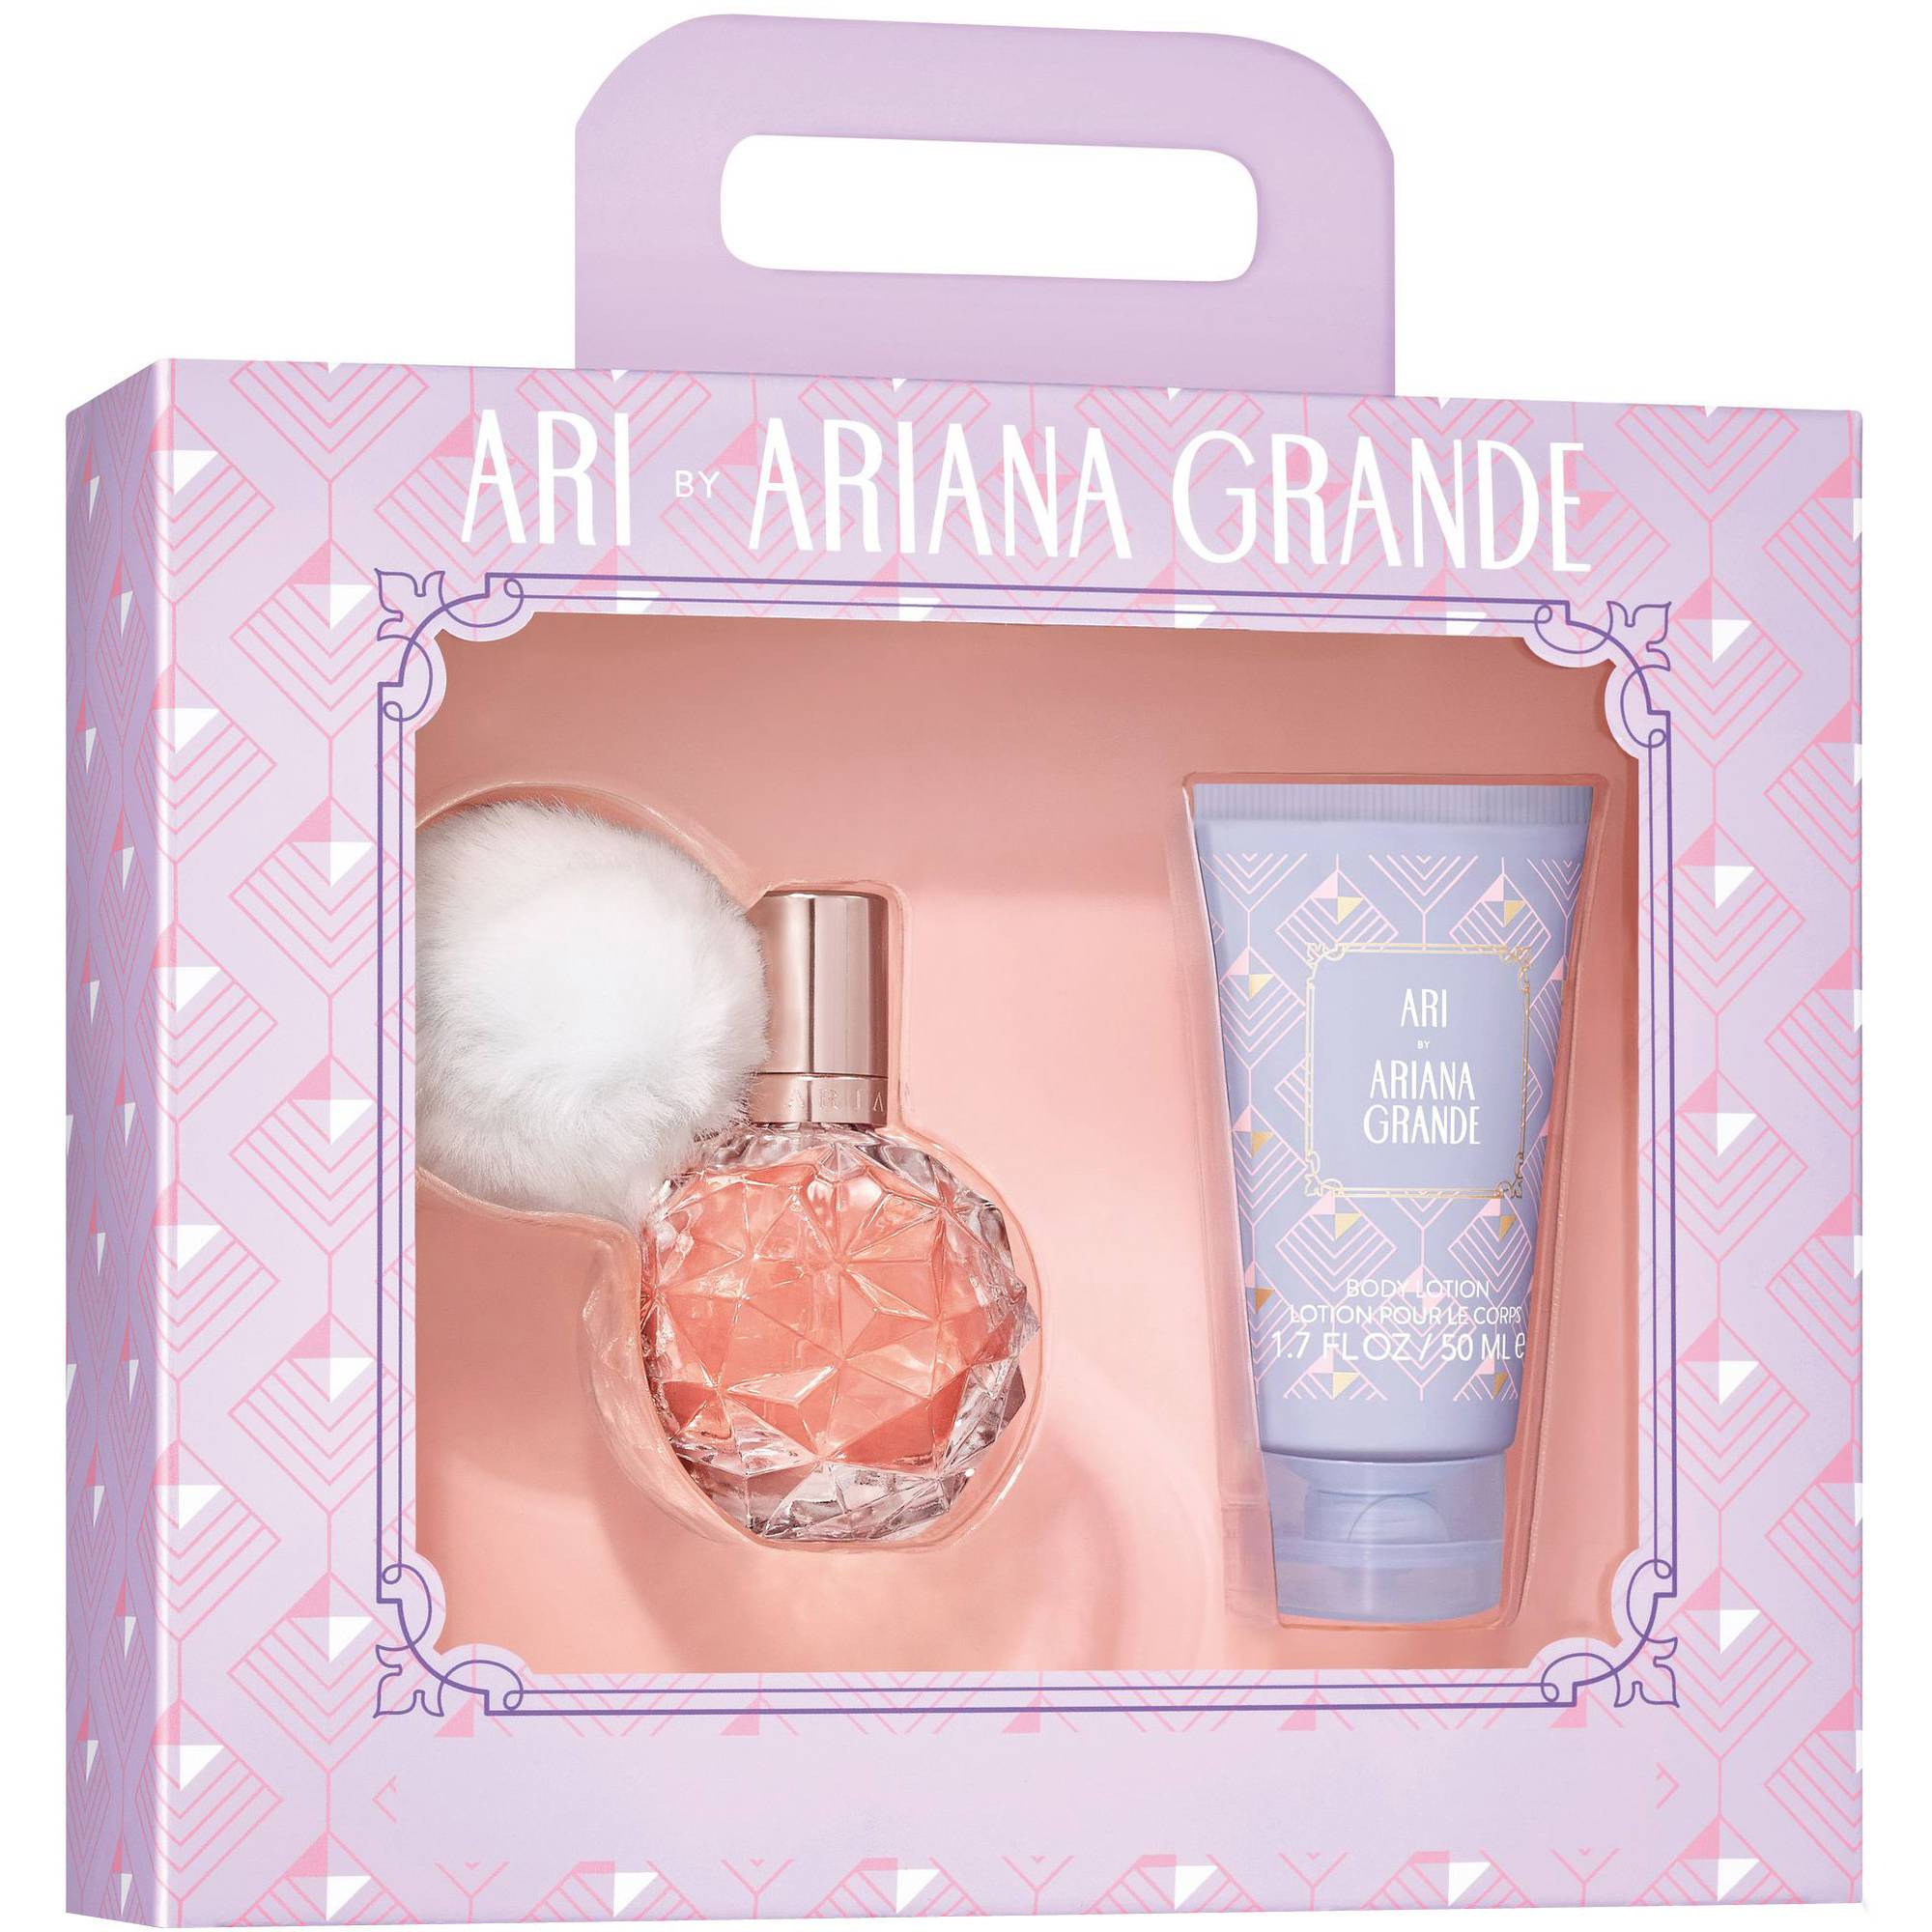 Ariana Grande Fragrance Gift Set for Women, 2 pc